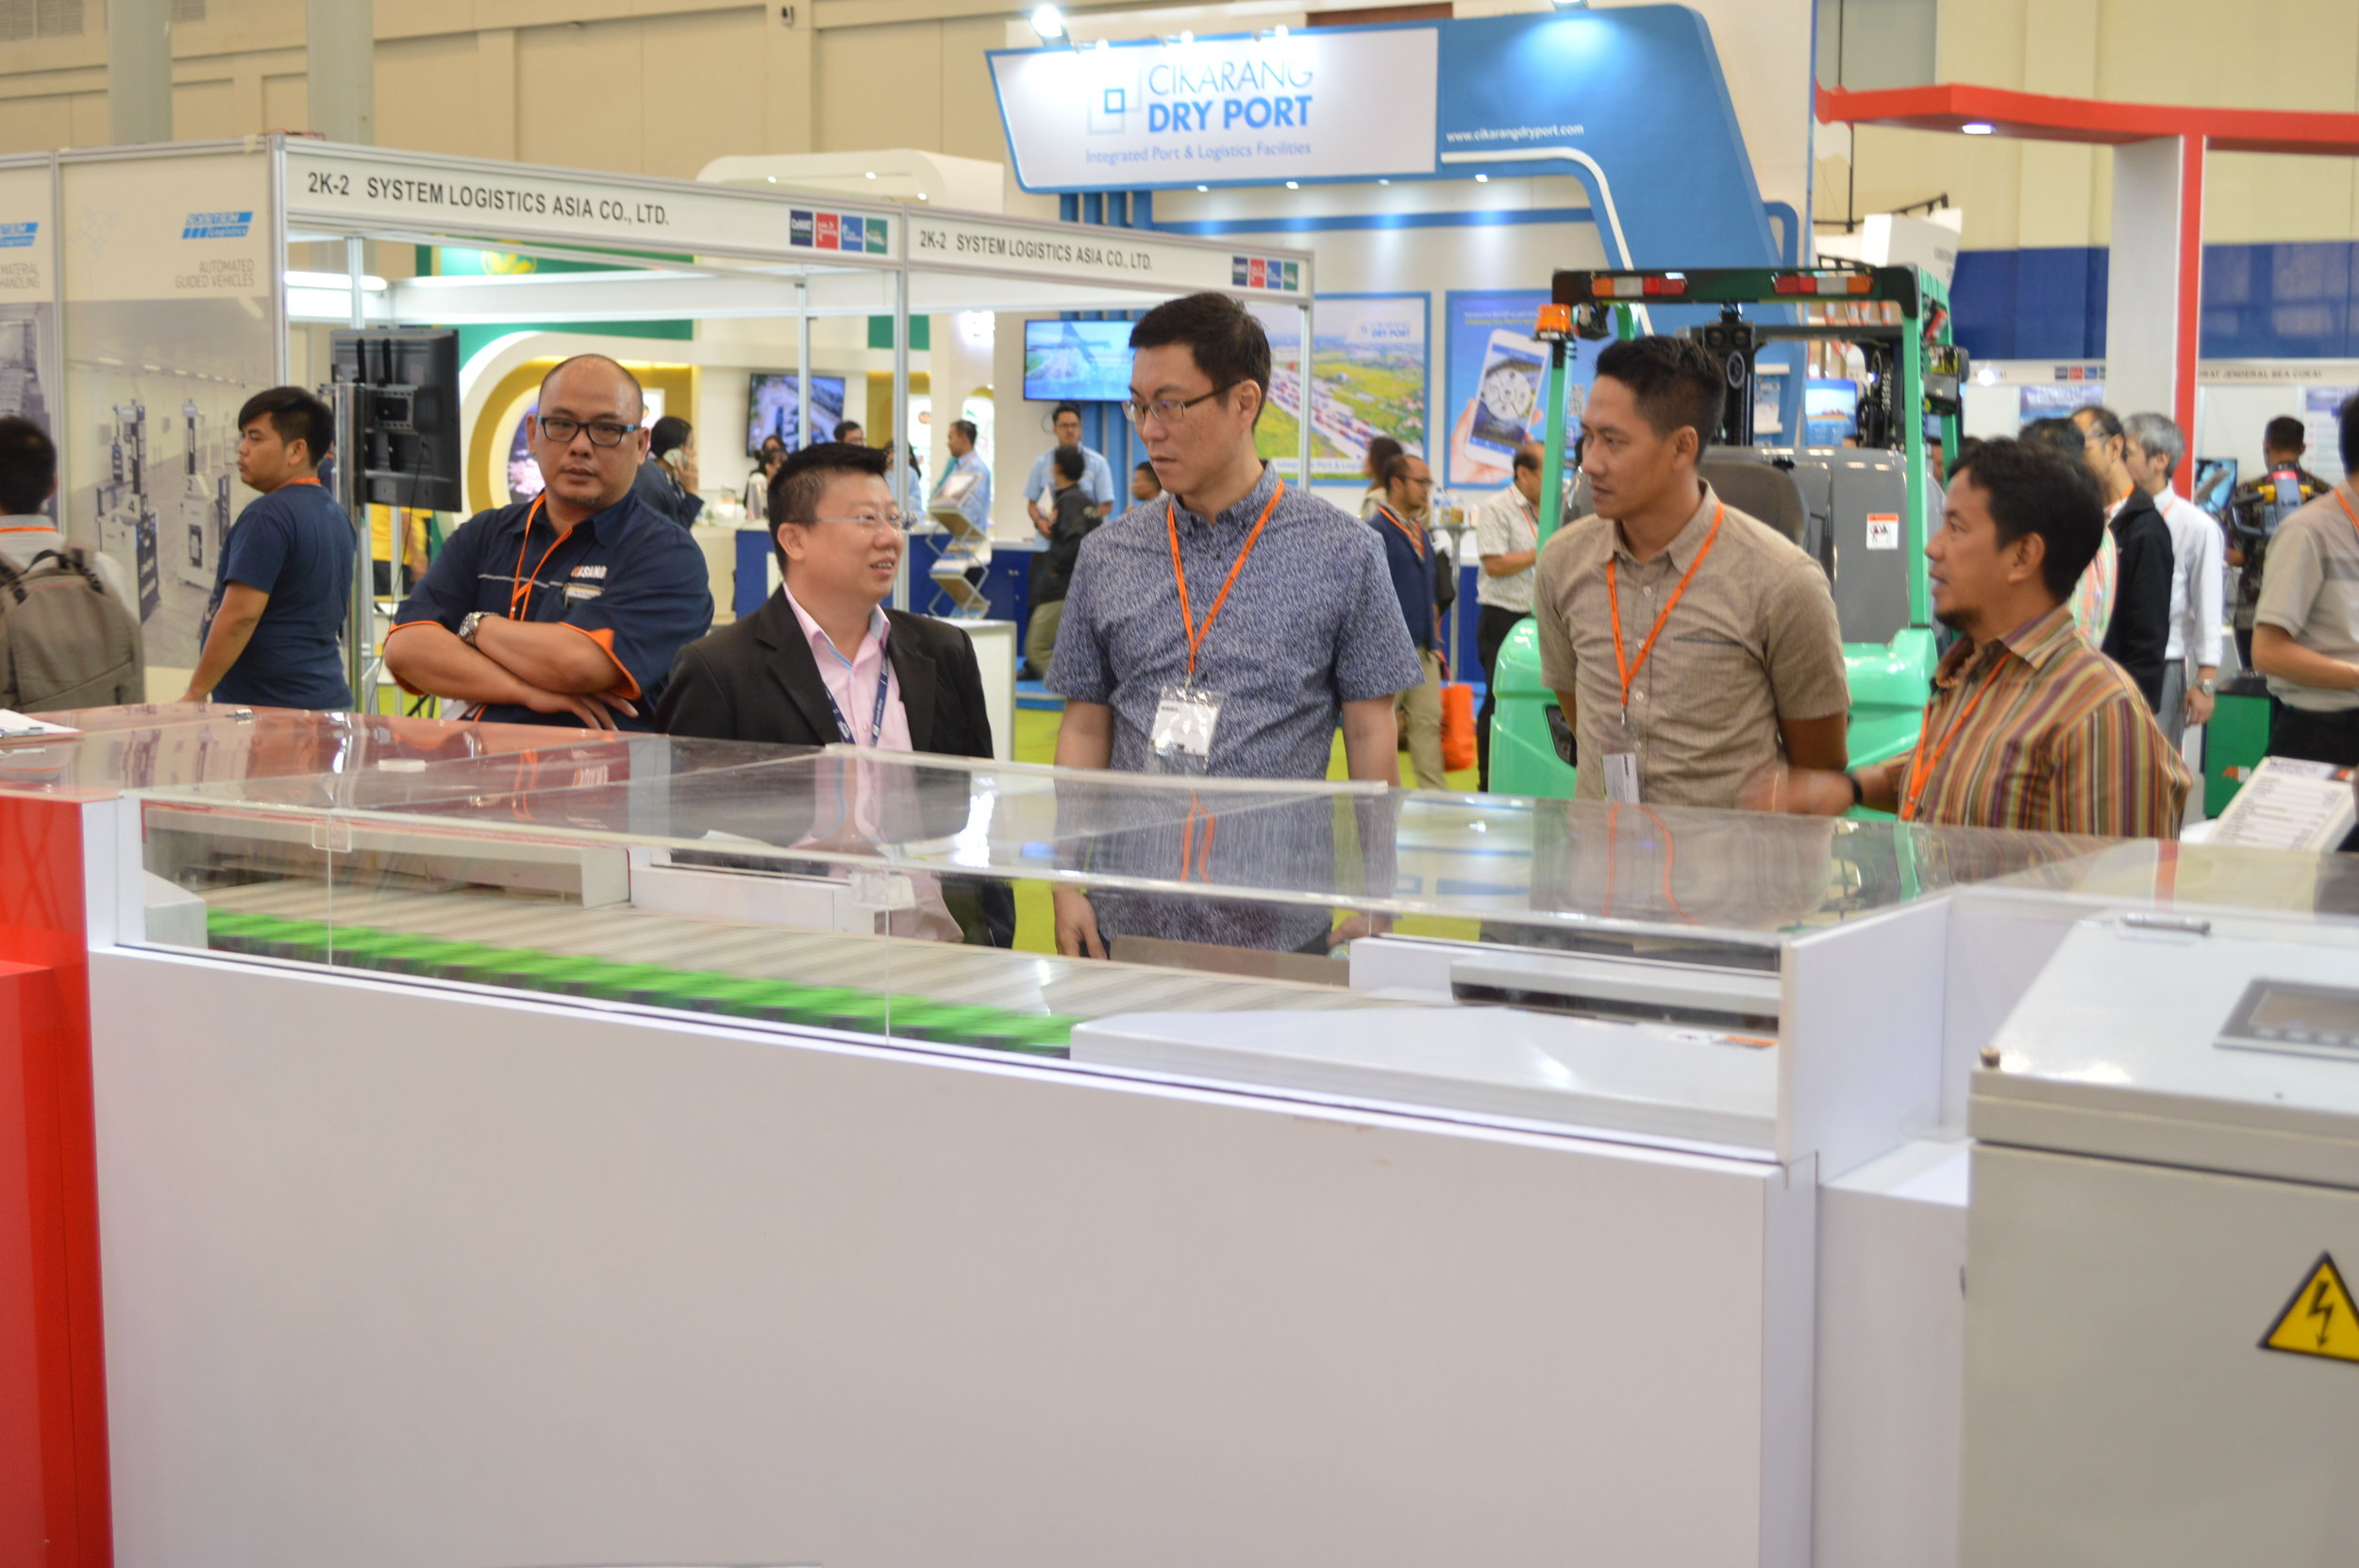 Cheng Hua representative explaining to exhibitors about our product  Megasort Shoe Sorter  that is exhibited during Indonesia CeMAT South East Asia 02-06 May2018.